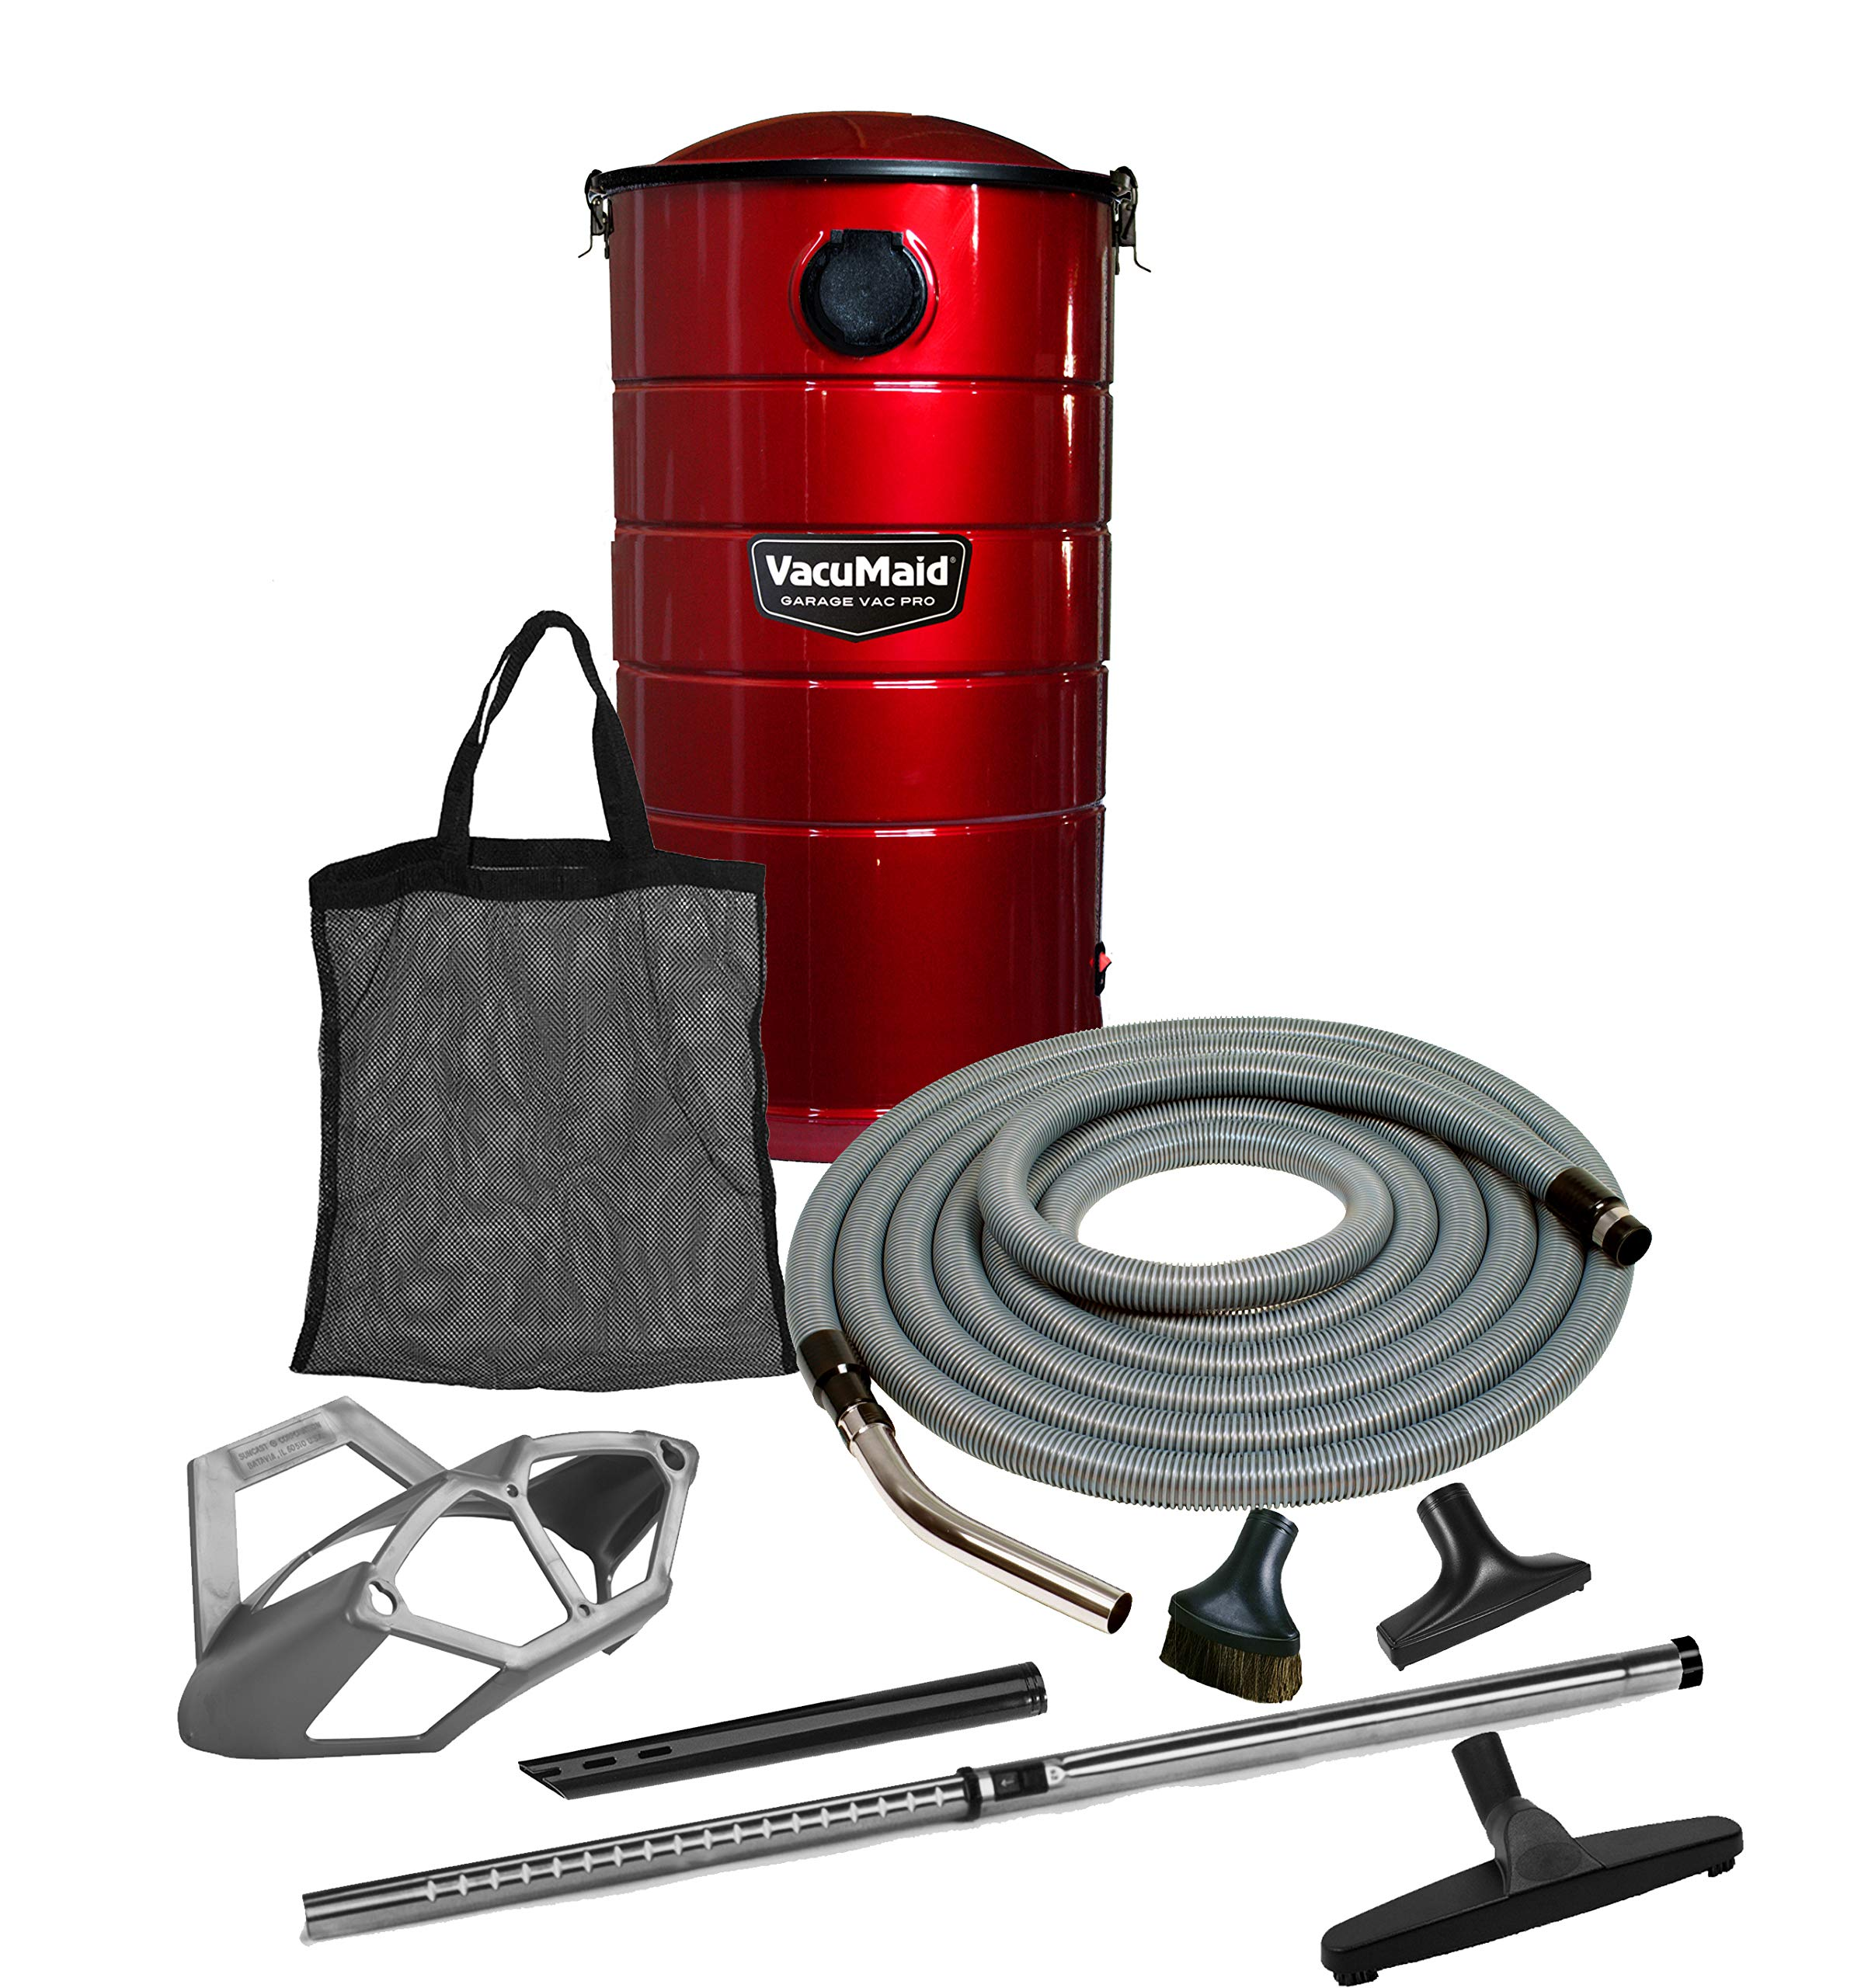 VacuMaid GV50RPRO Professional Wall Mounted Garage and Car Vacuum with 50 ft. Hose and Tools by VacuMaid